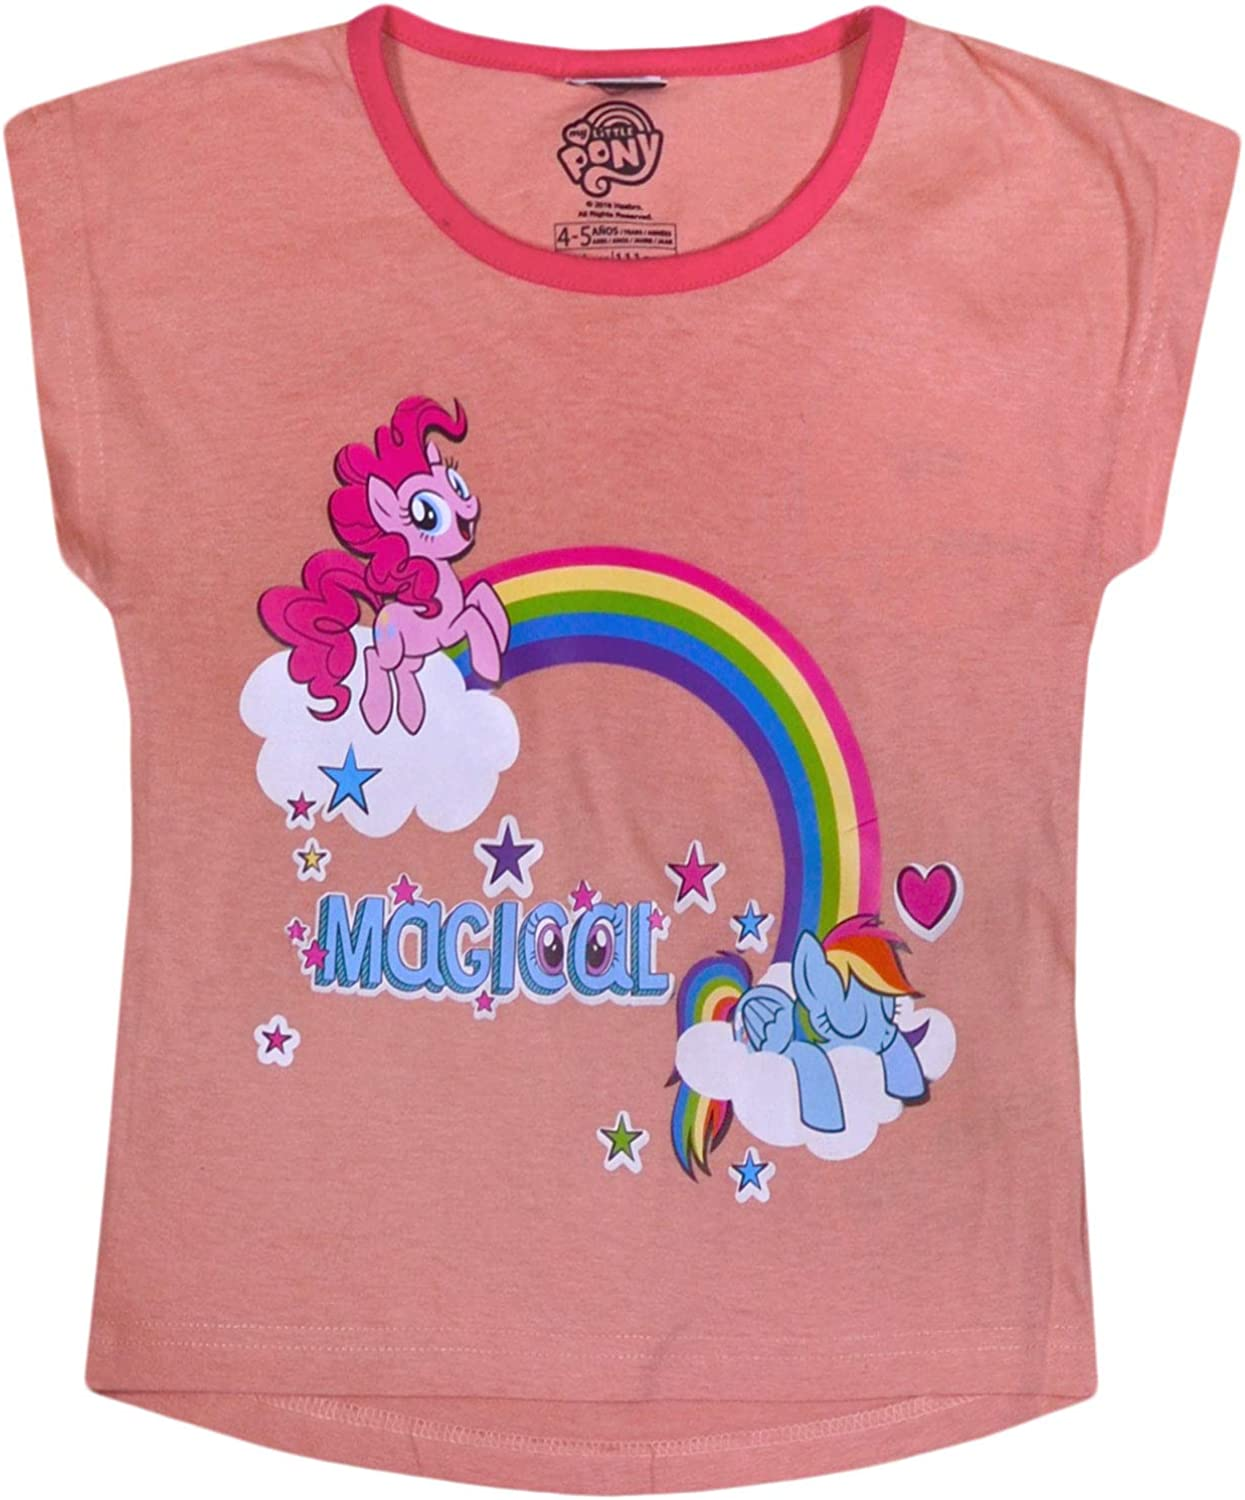 JollyRascals Girls T-Shirt My Little Pony 2 Pack Unicorn Top Kids New 100/% Cotton Summer Holiday Tops 2 Psc Ages 2 3 4 5 6 7 Years